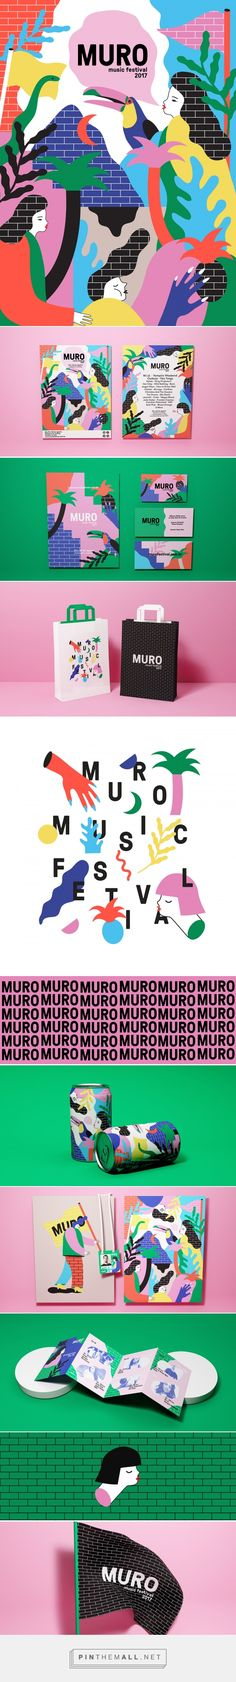 Muro Music Festival Branding by Giovani Flores | Fivestar Branding Agency – Design and Branding Agency & Curated Inspiration Gallery